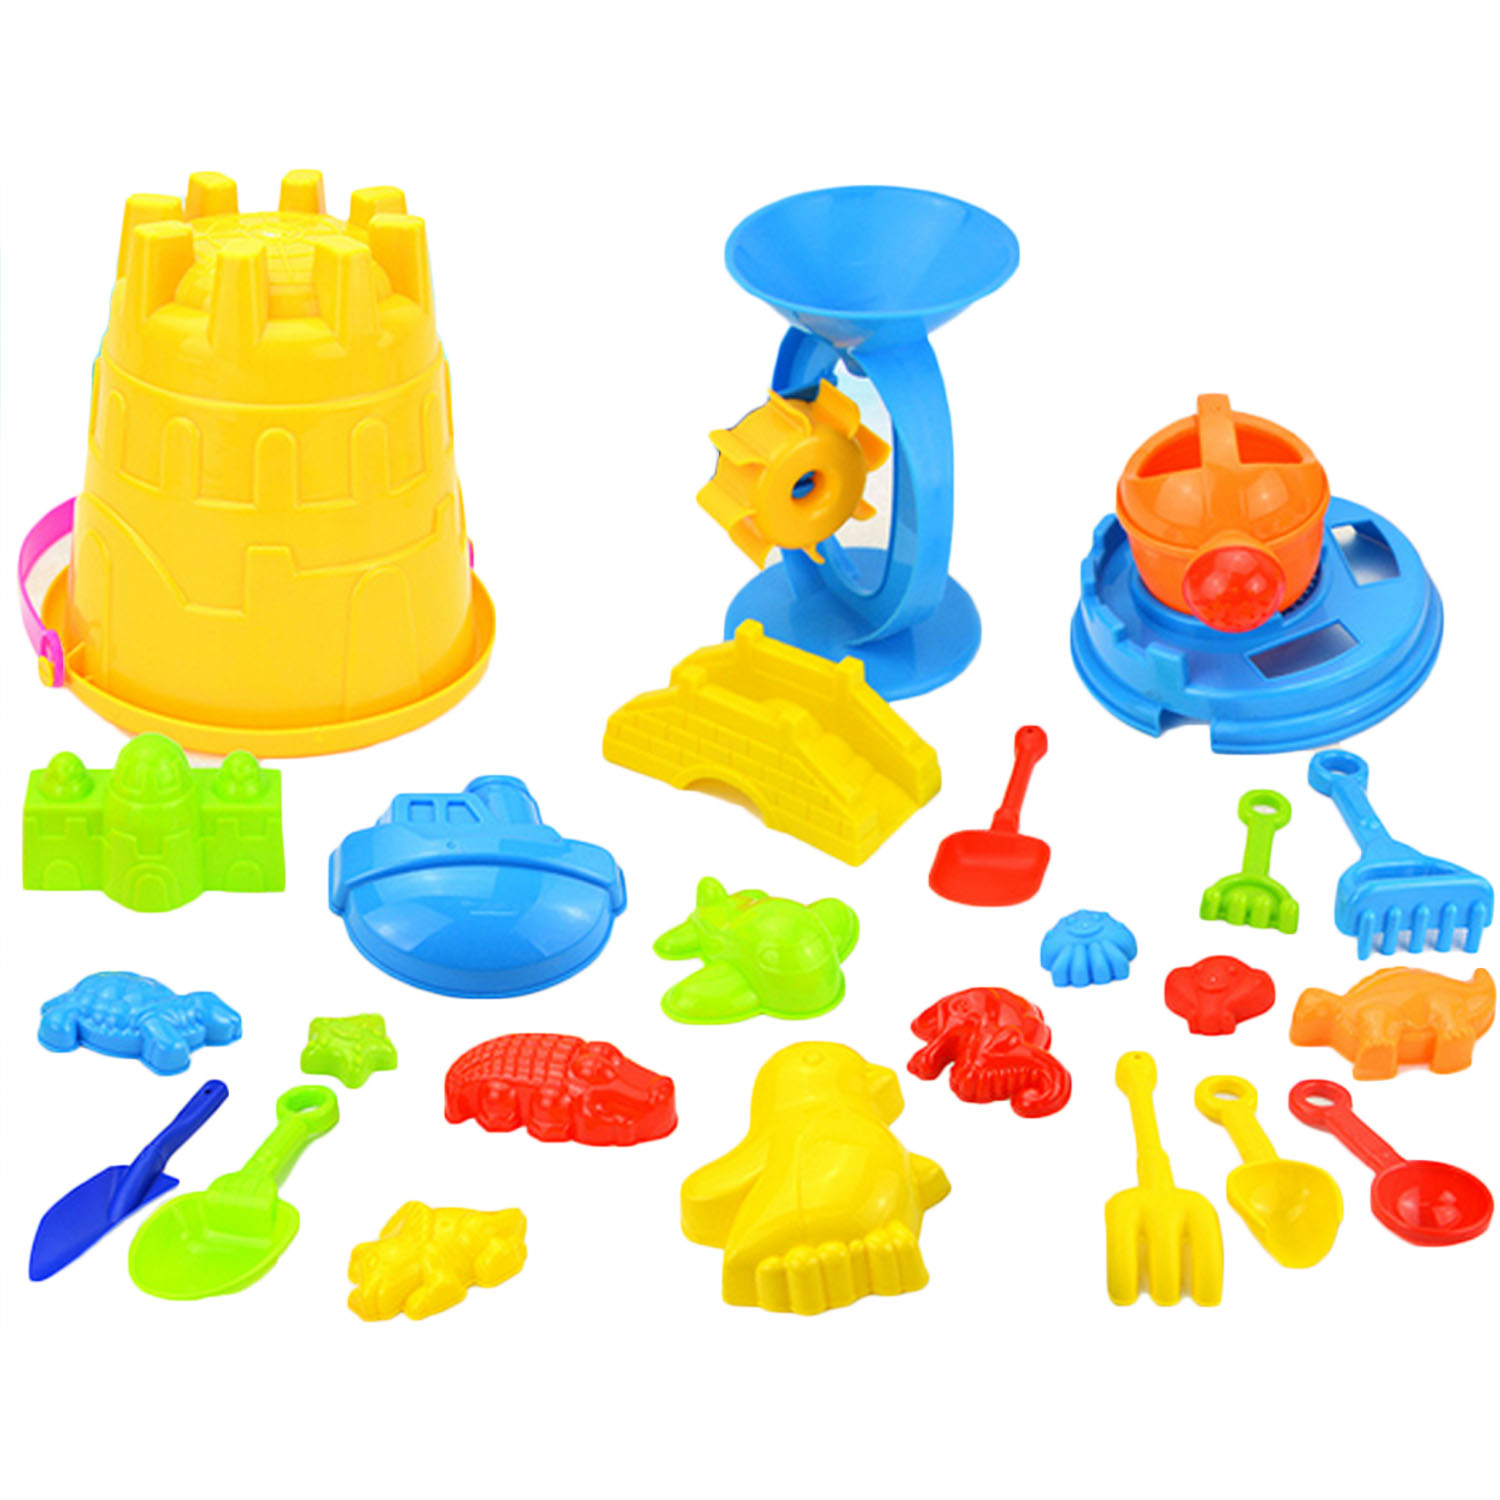 25pcs Funny Kids Beach Sand Game Toy Set Including Shovels Rake Hourglass Bucket Kids Beach Playset Role Play Toy Child Sand Toy